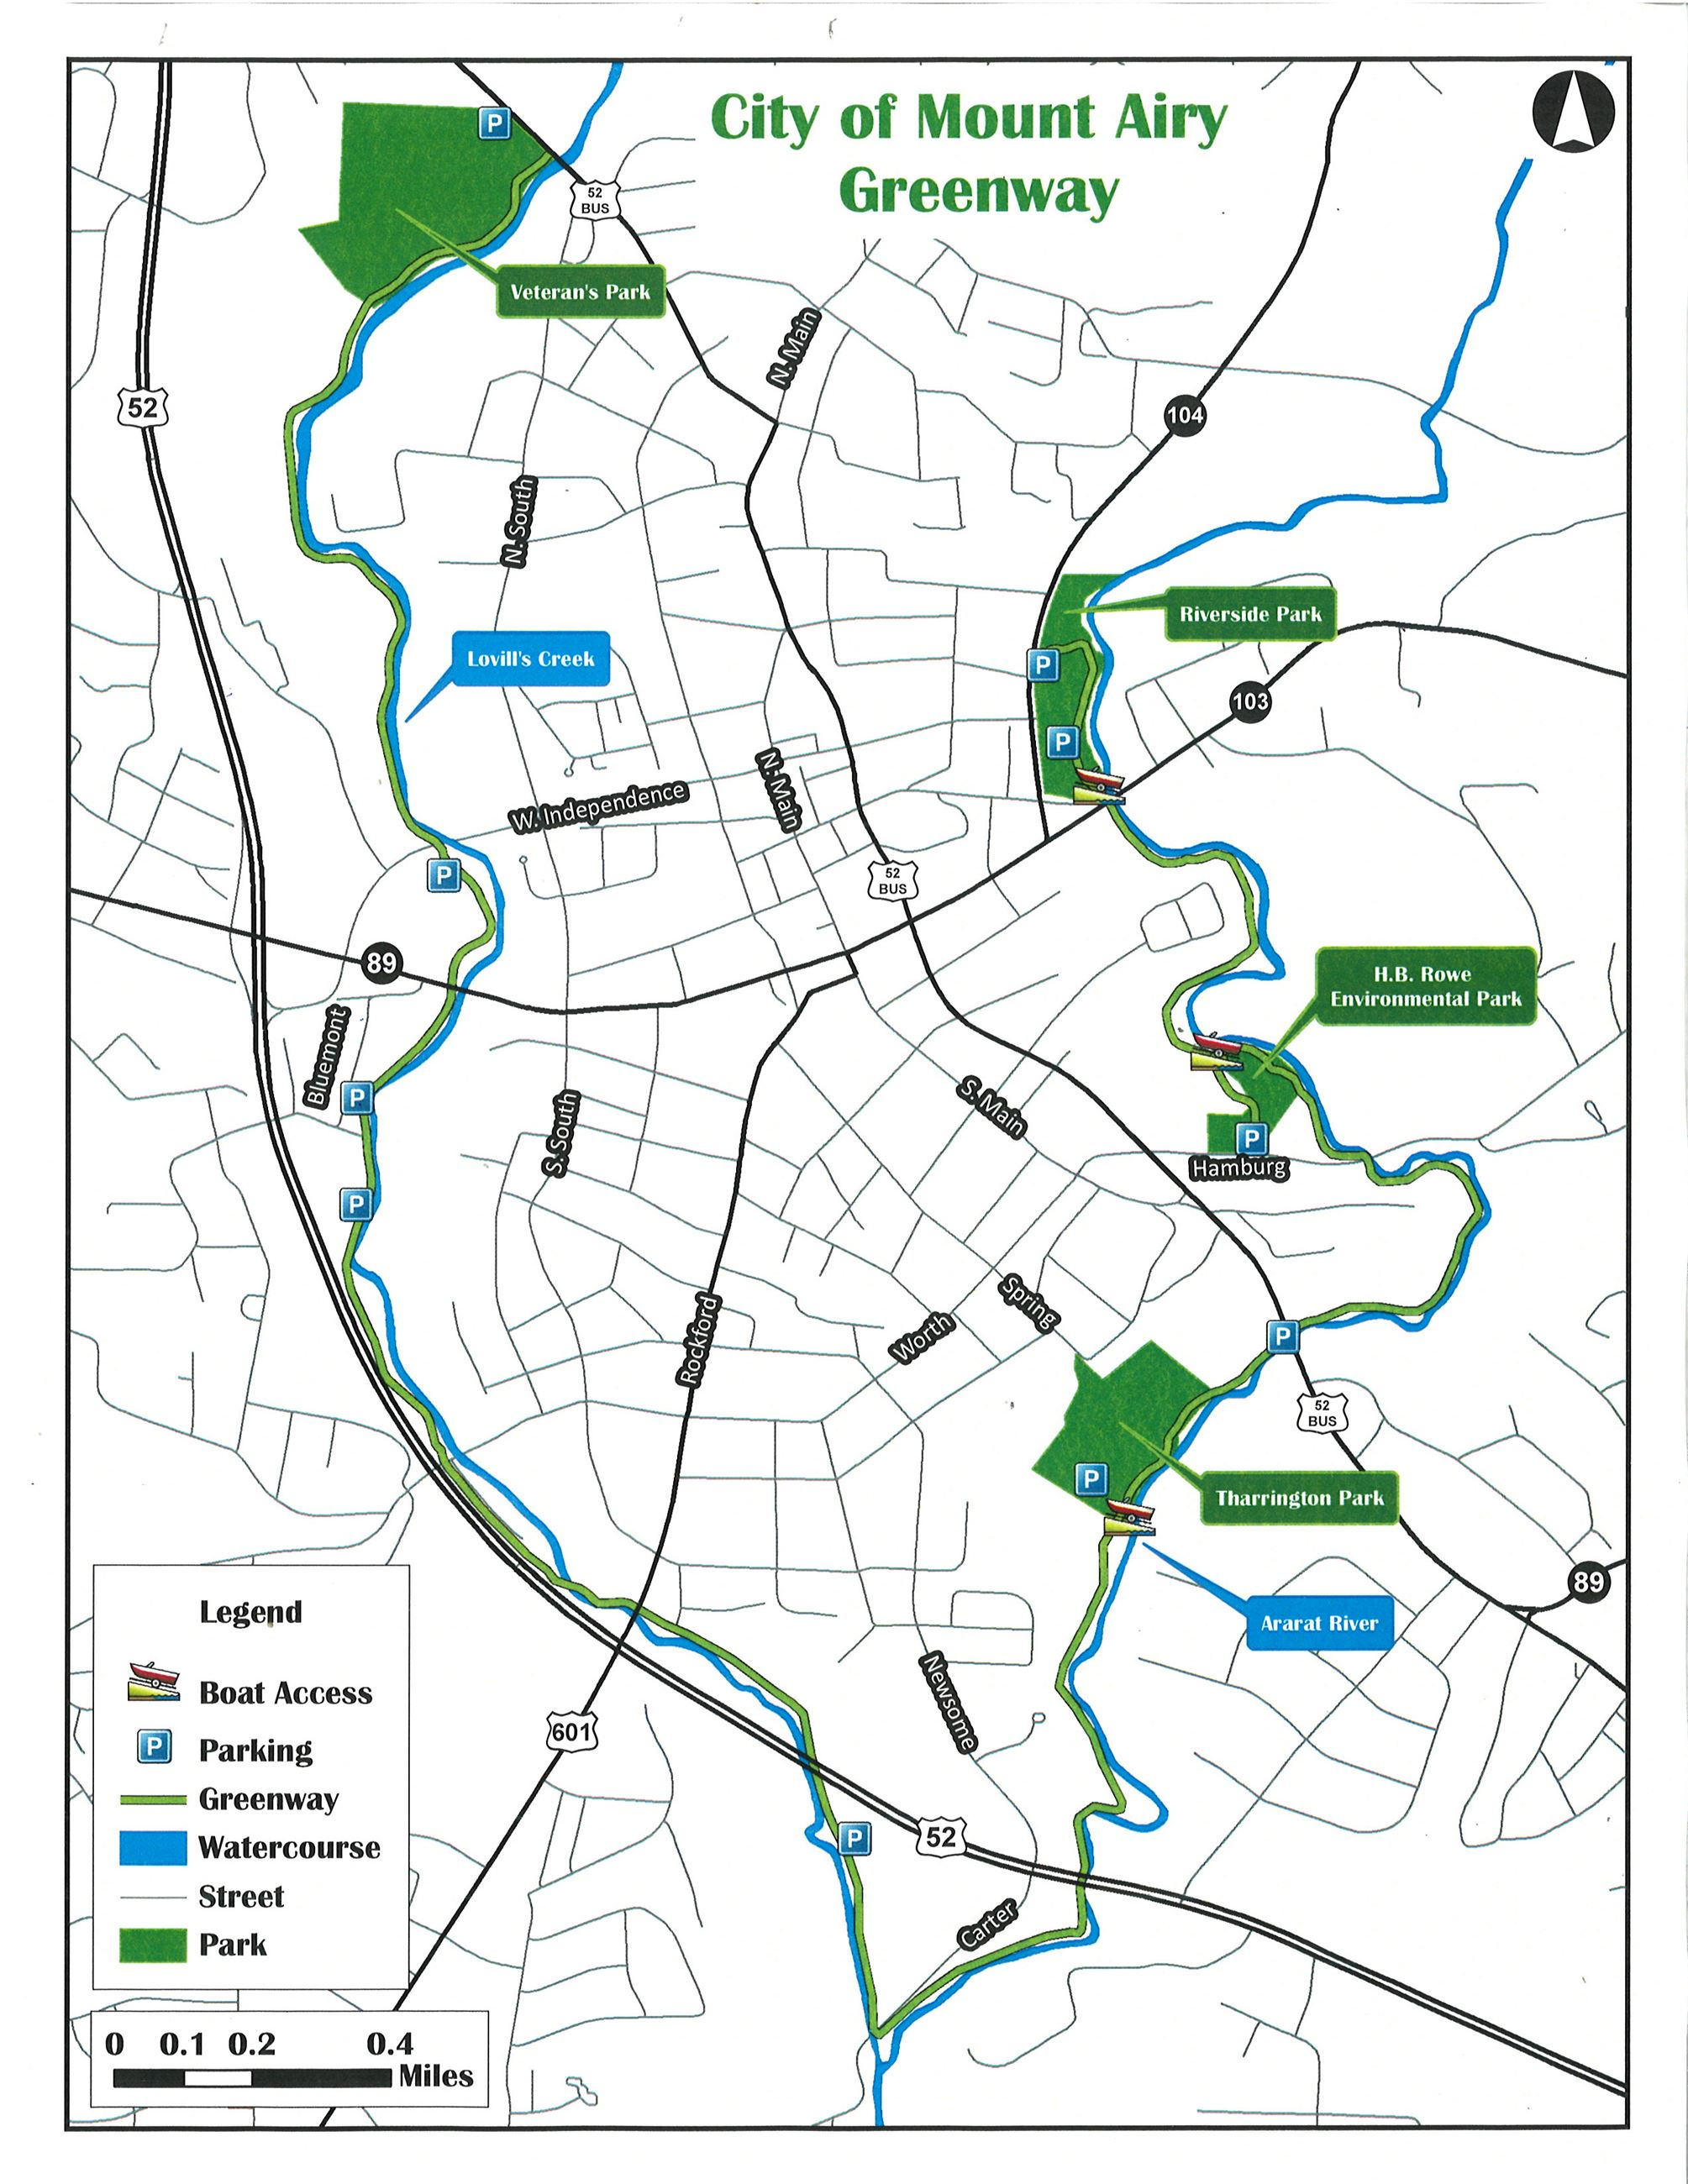 FULL Greenway Map